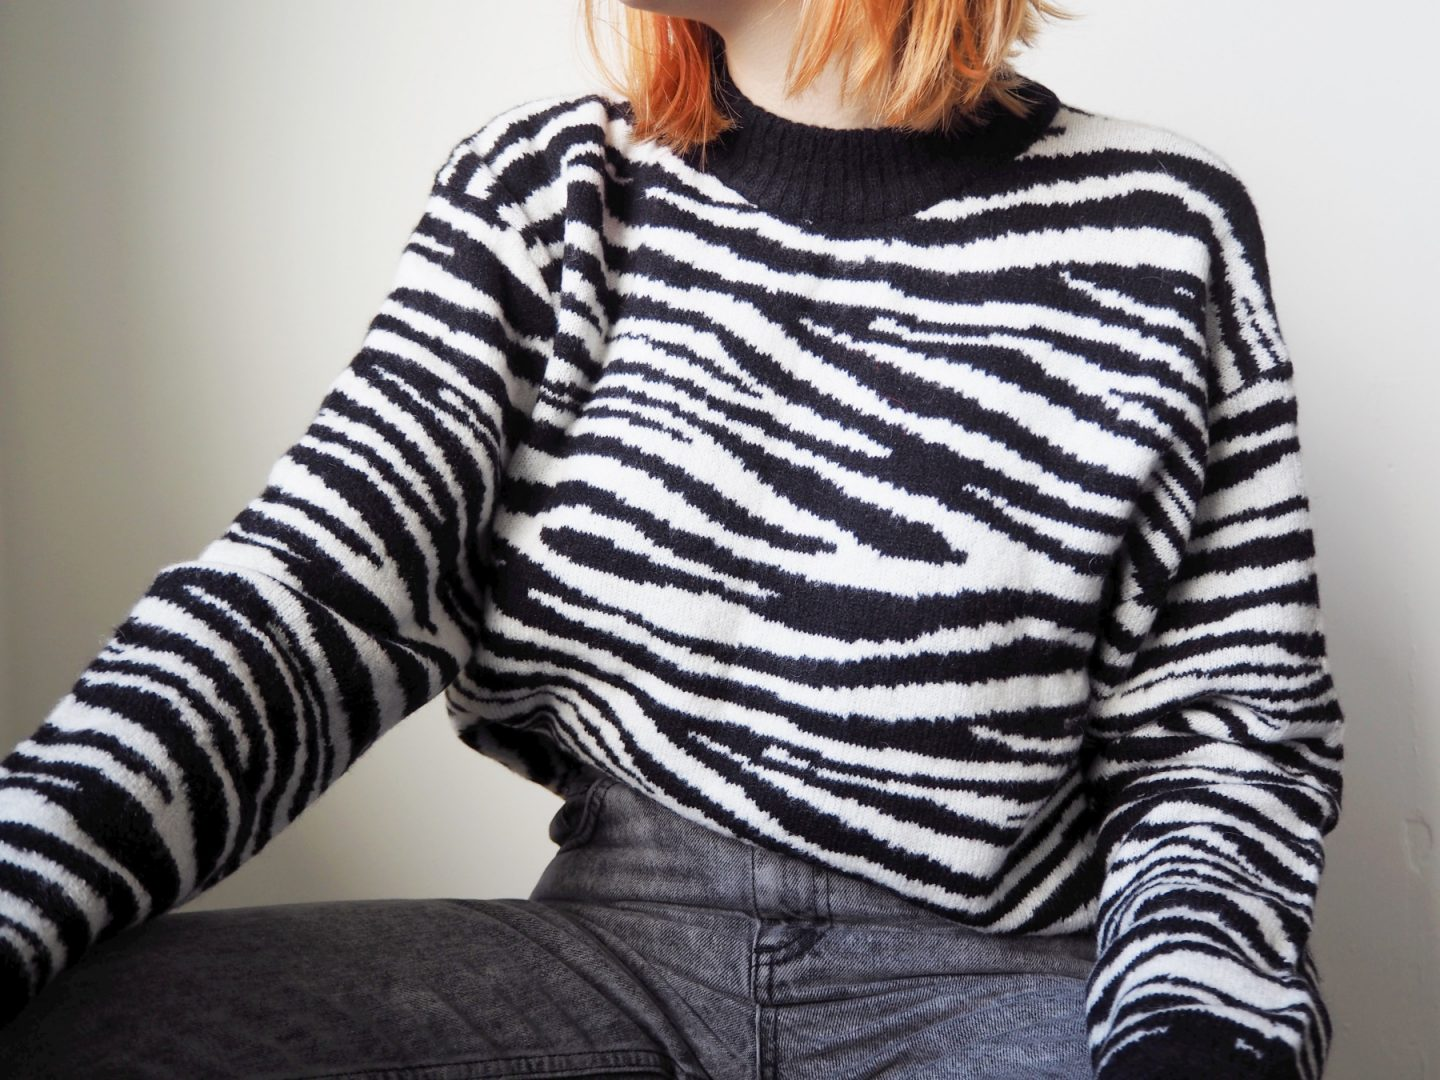 Getting Winter Ready With NA-KD Fashion - zebra print jumper